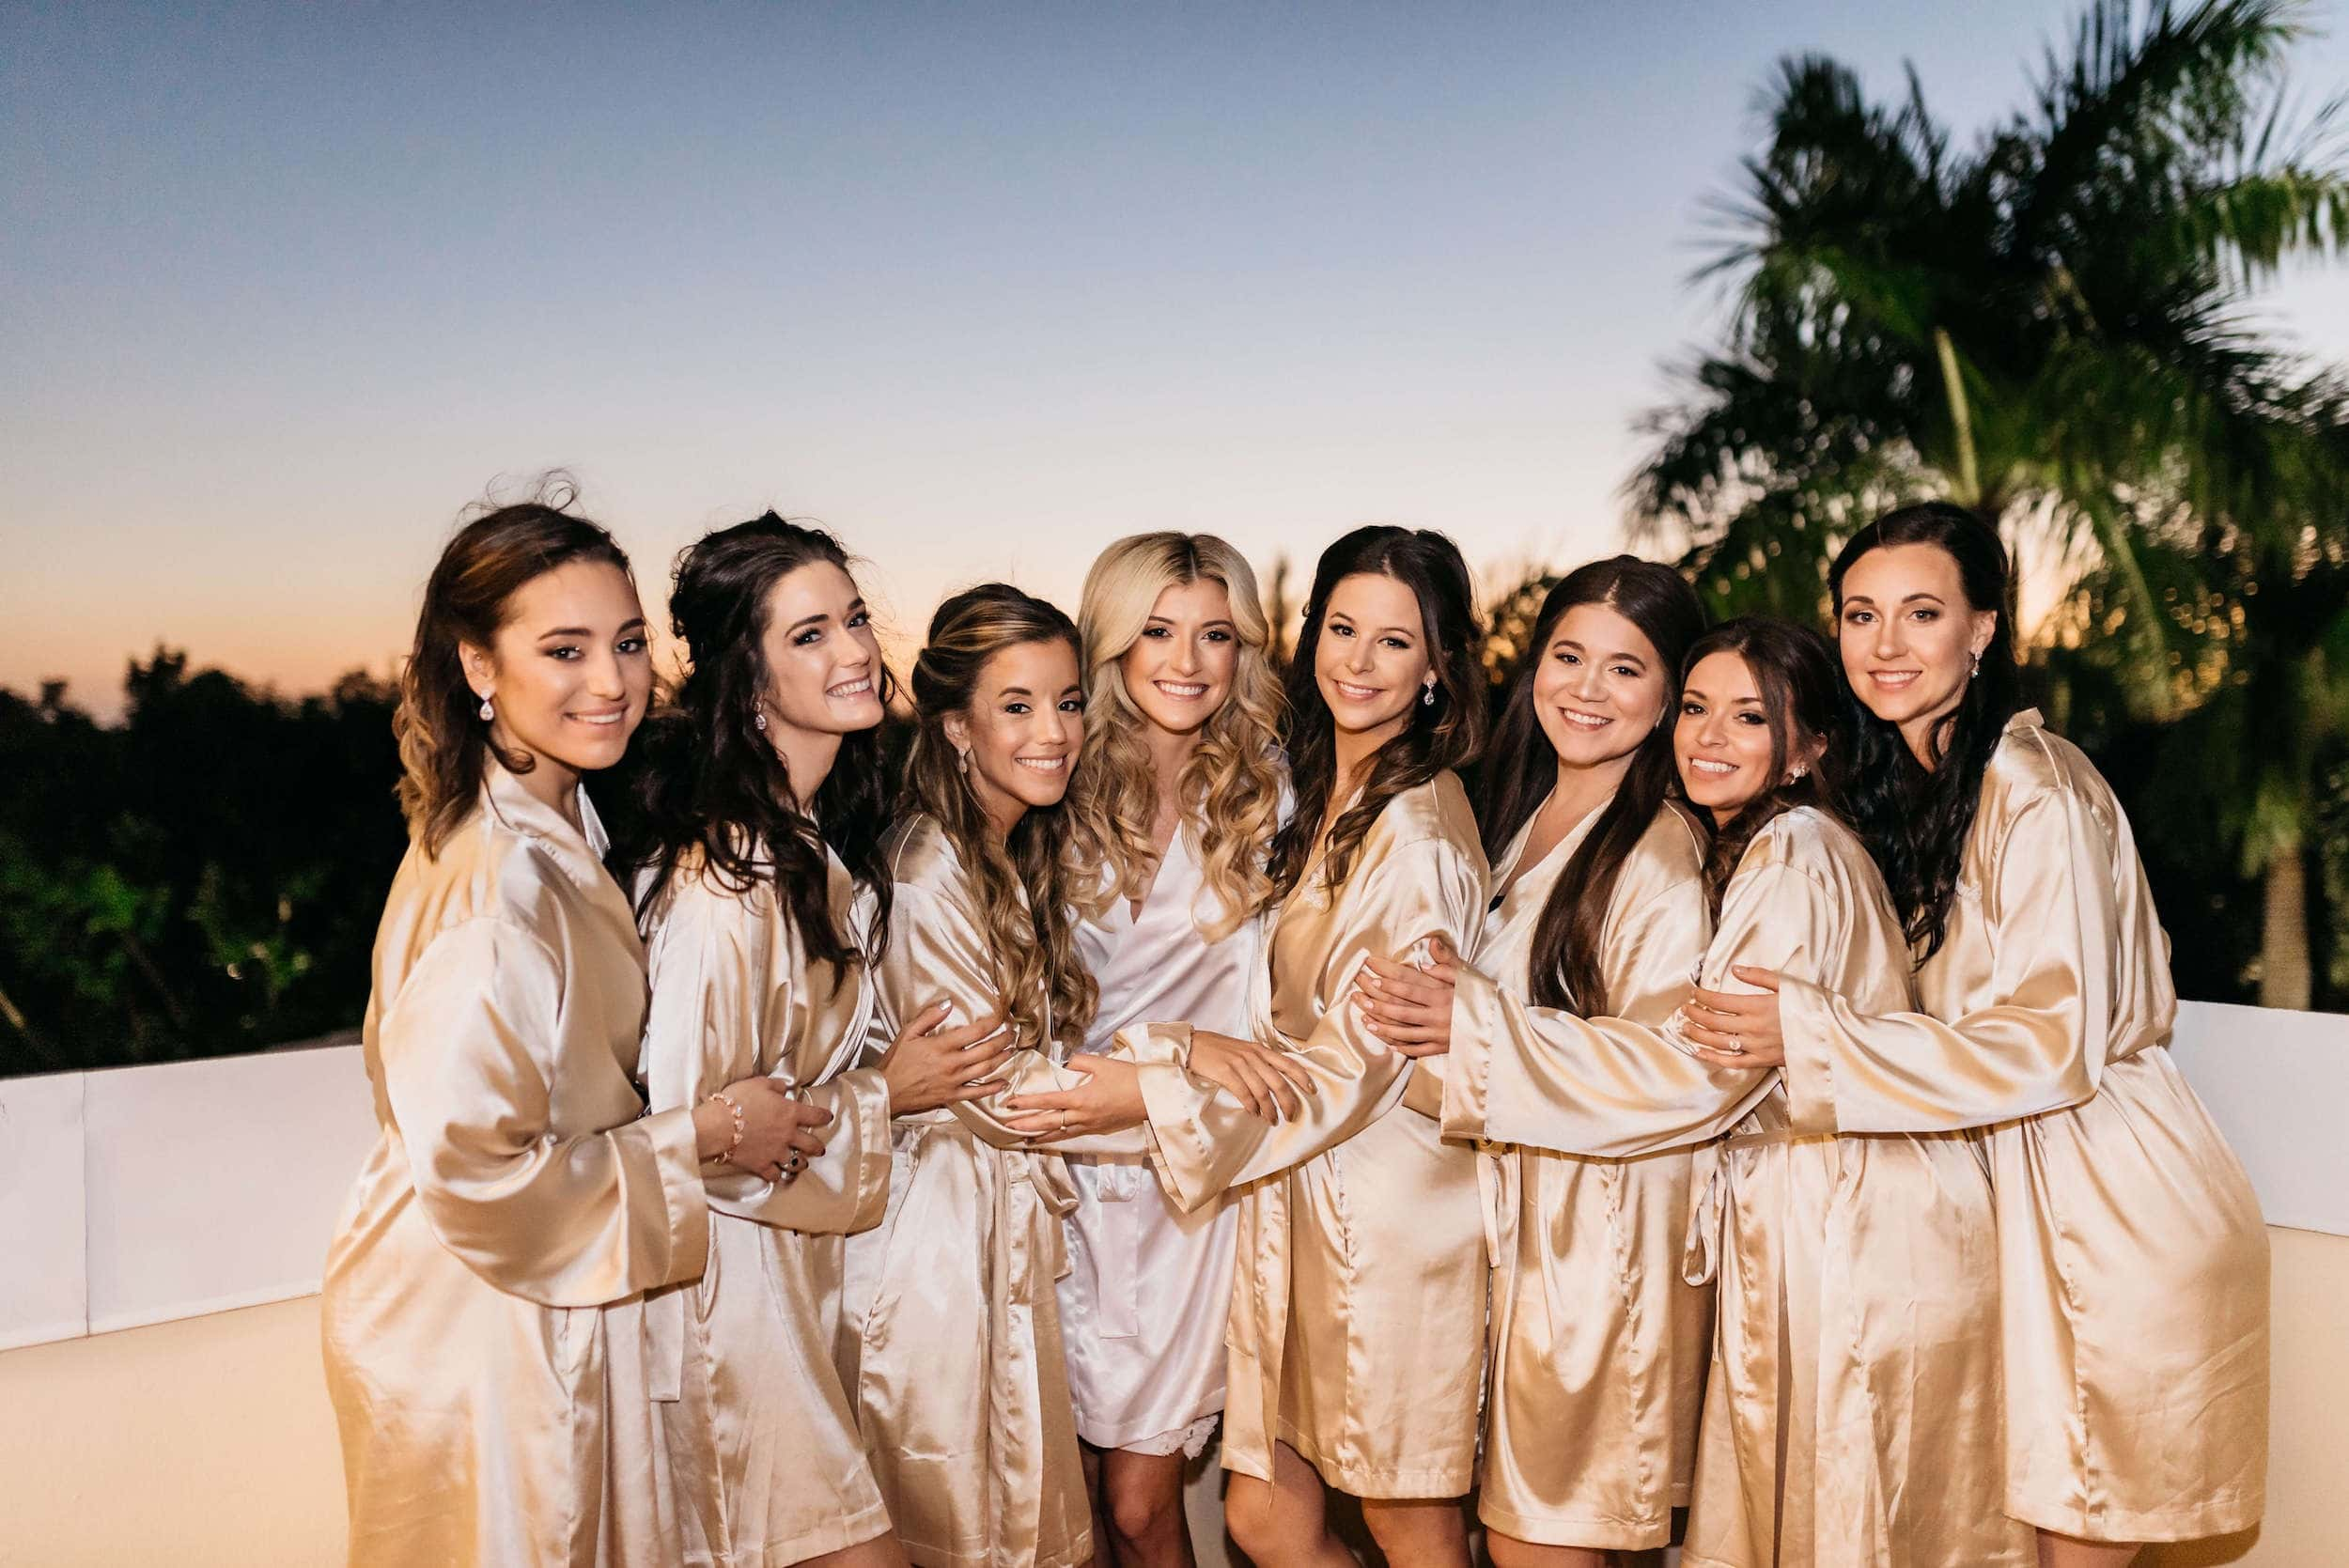 Blushing bride and her beautiful bridesmaids in robes